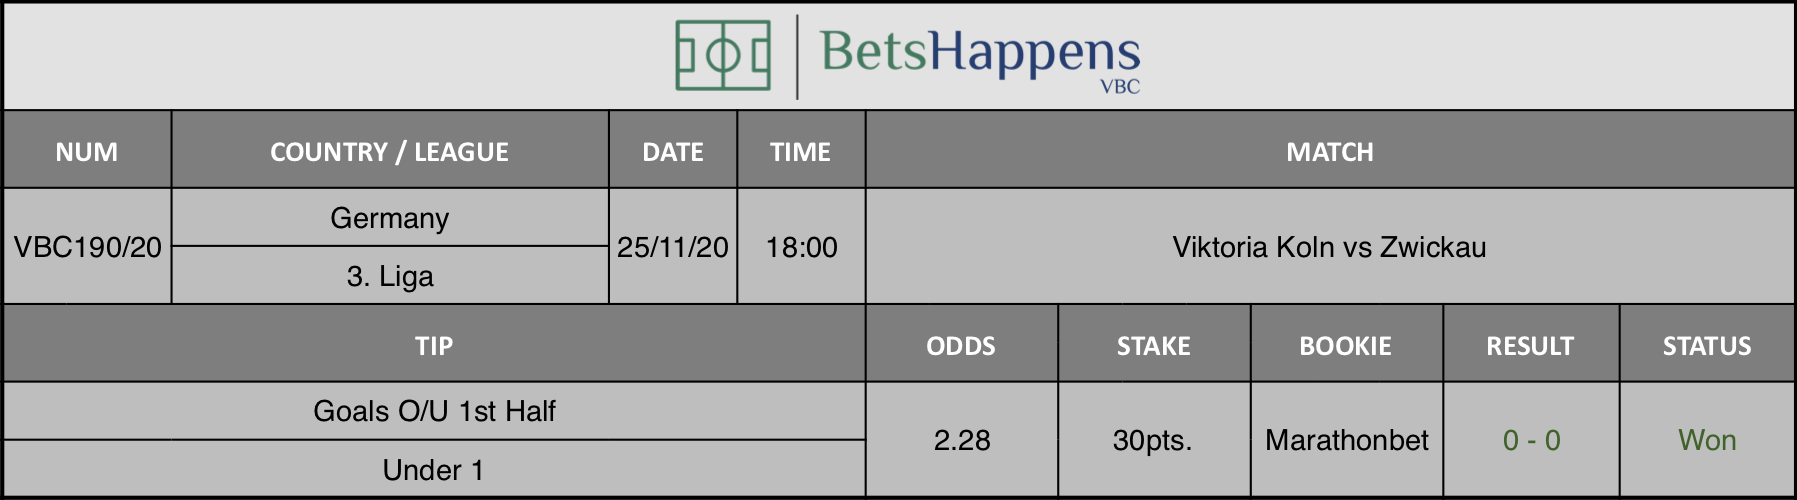 Results of our tip for the Viktoria Koln vs Zwickau match where Goals O/U 1st Half - Under 1 is recommended.